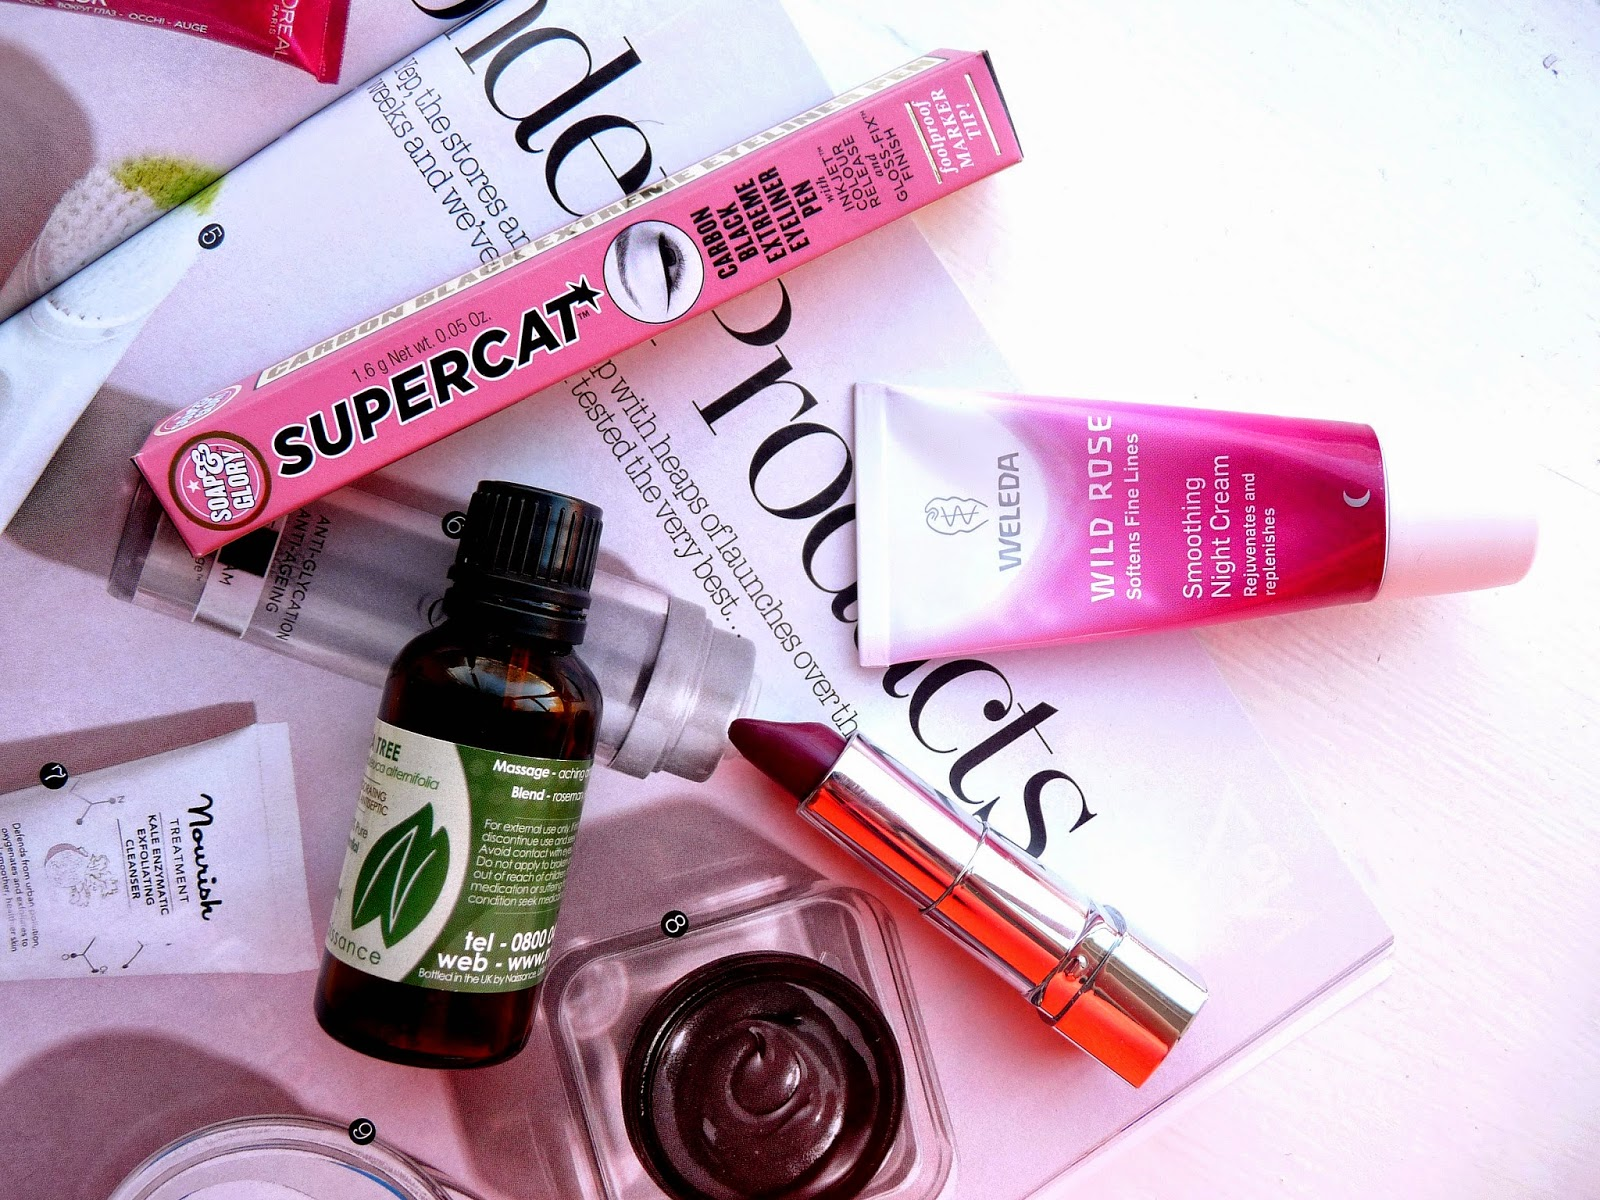 October beauty skincare favourites 2014